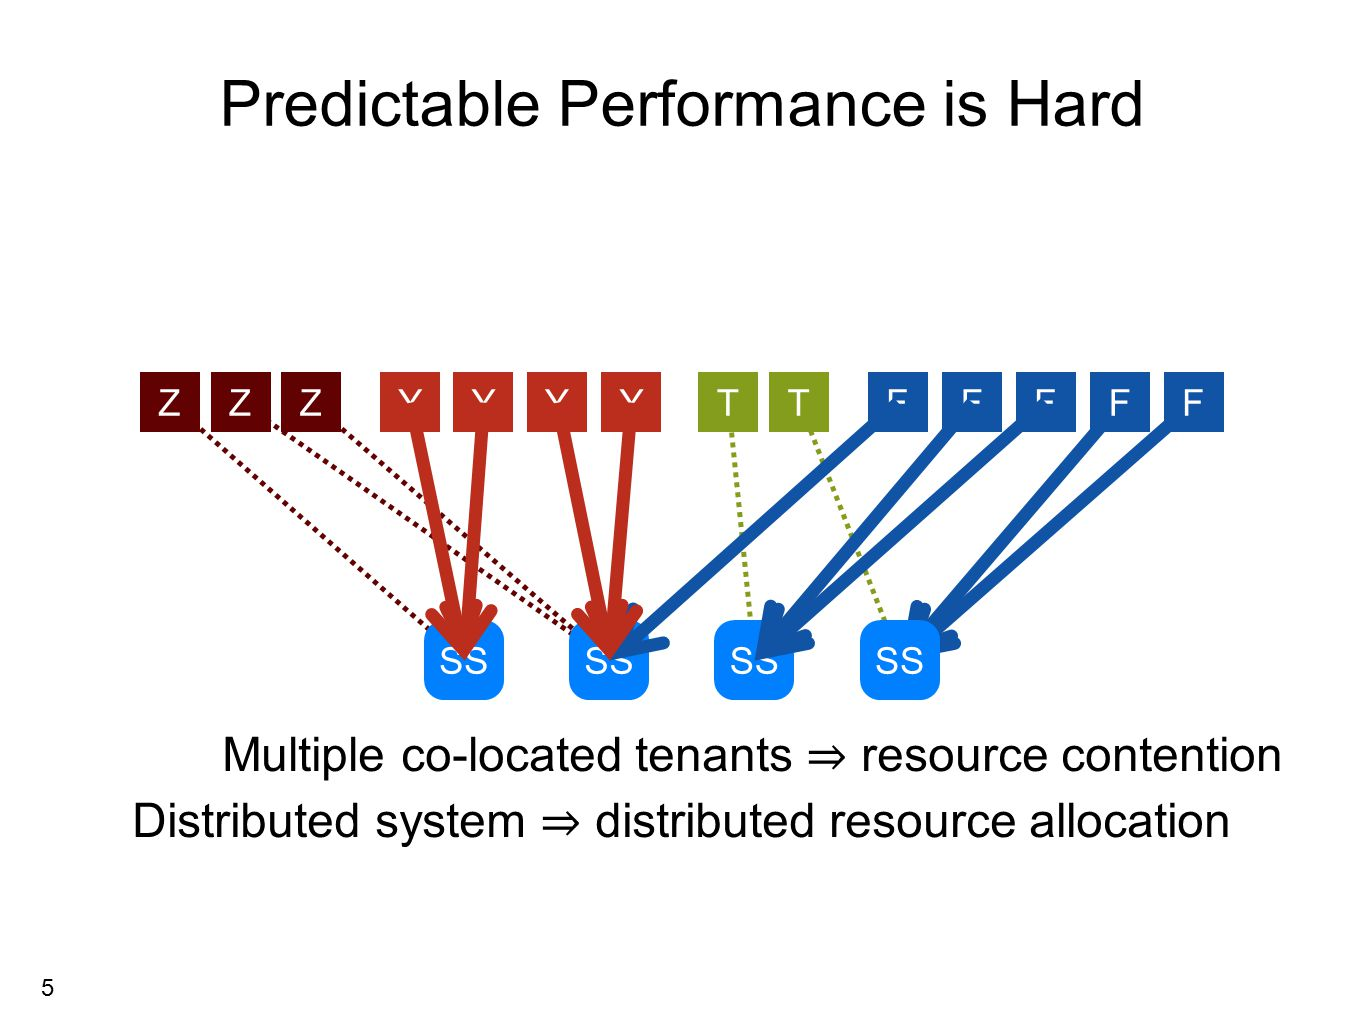 5 Distributed system ⇒ distributed resource allocation Multiple co-located tenants ⇒ resource contention ZYTFZYFTYYZFFF SS Predictable Performance is Hard